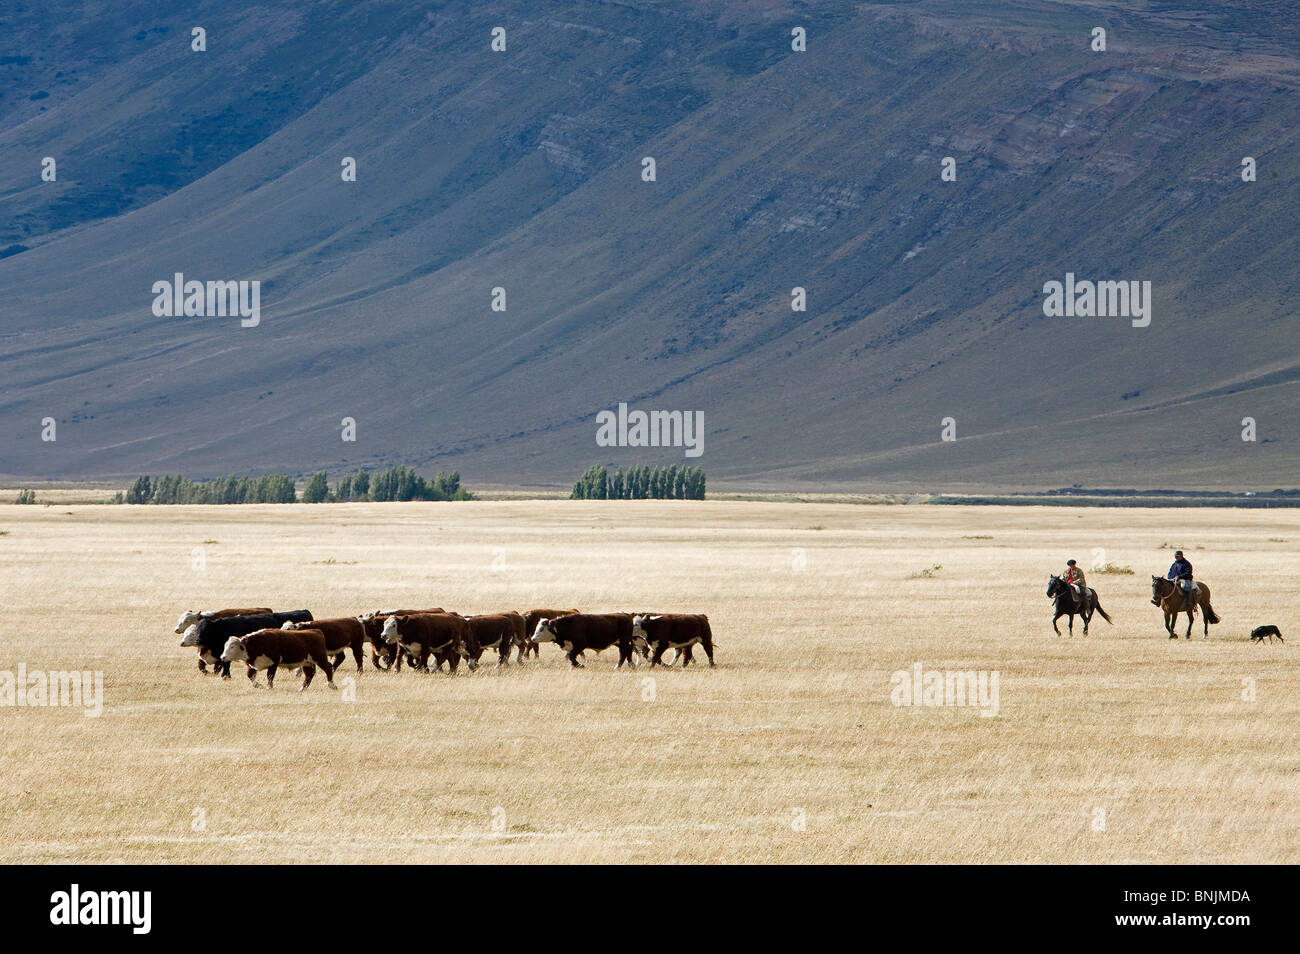 Chile South America March 2009 Chilean Patagonia cows cattle grassland mountains mountain landscape scenery agriculture Stock Photo